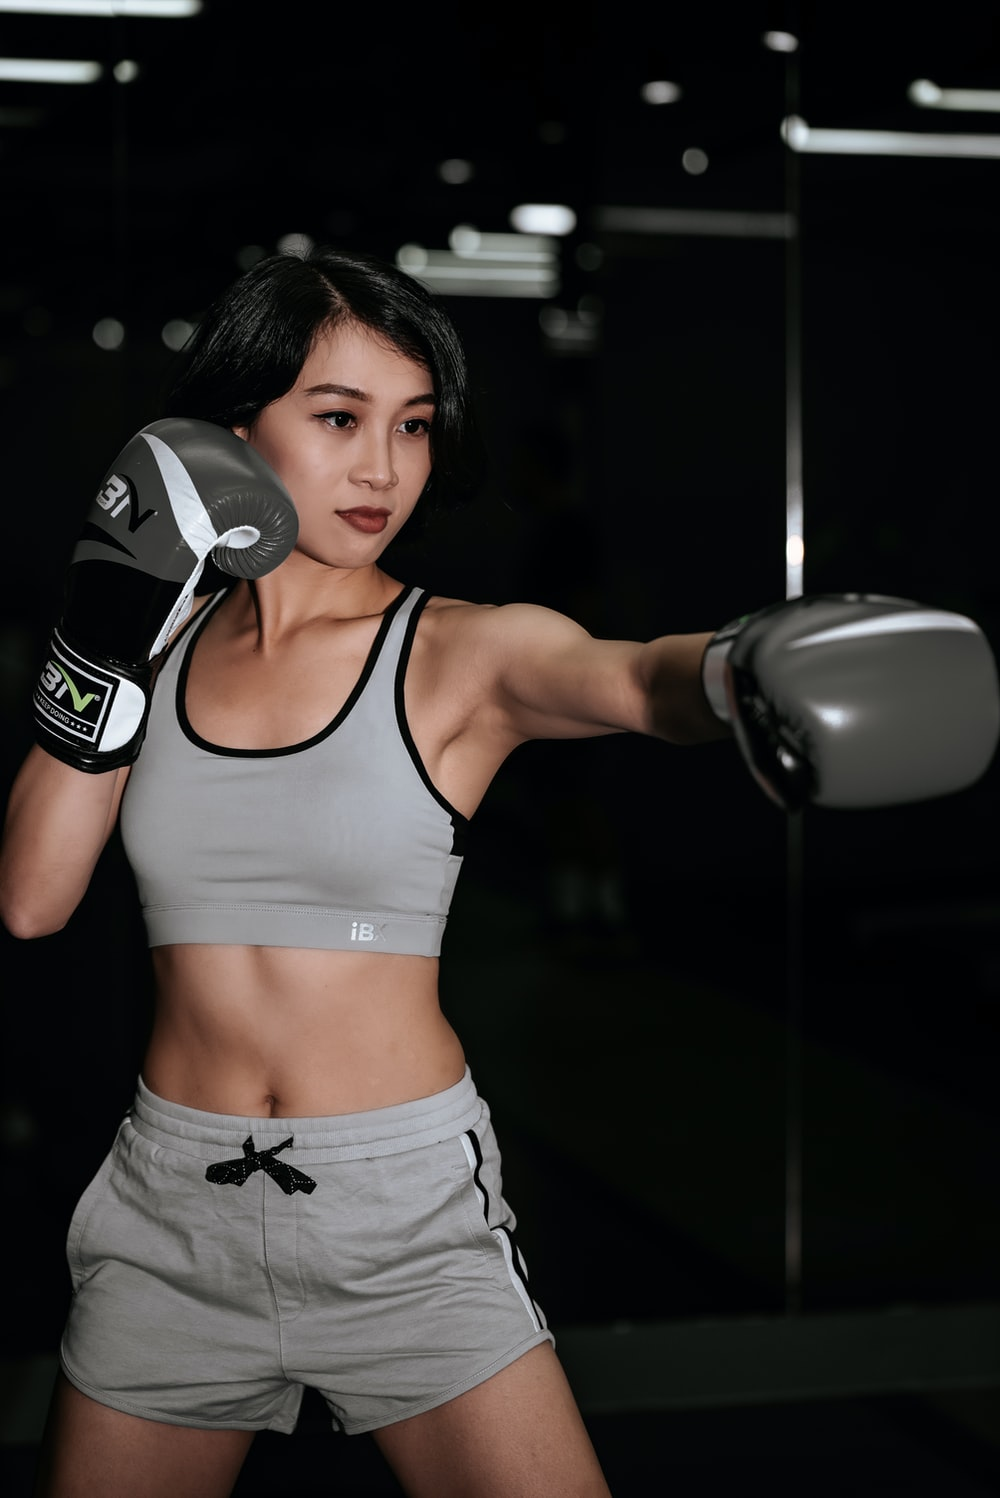 woman in white sports bra and white shorts holding black and white boxing gloves